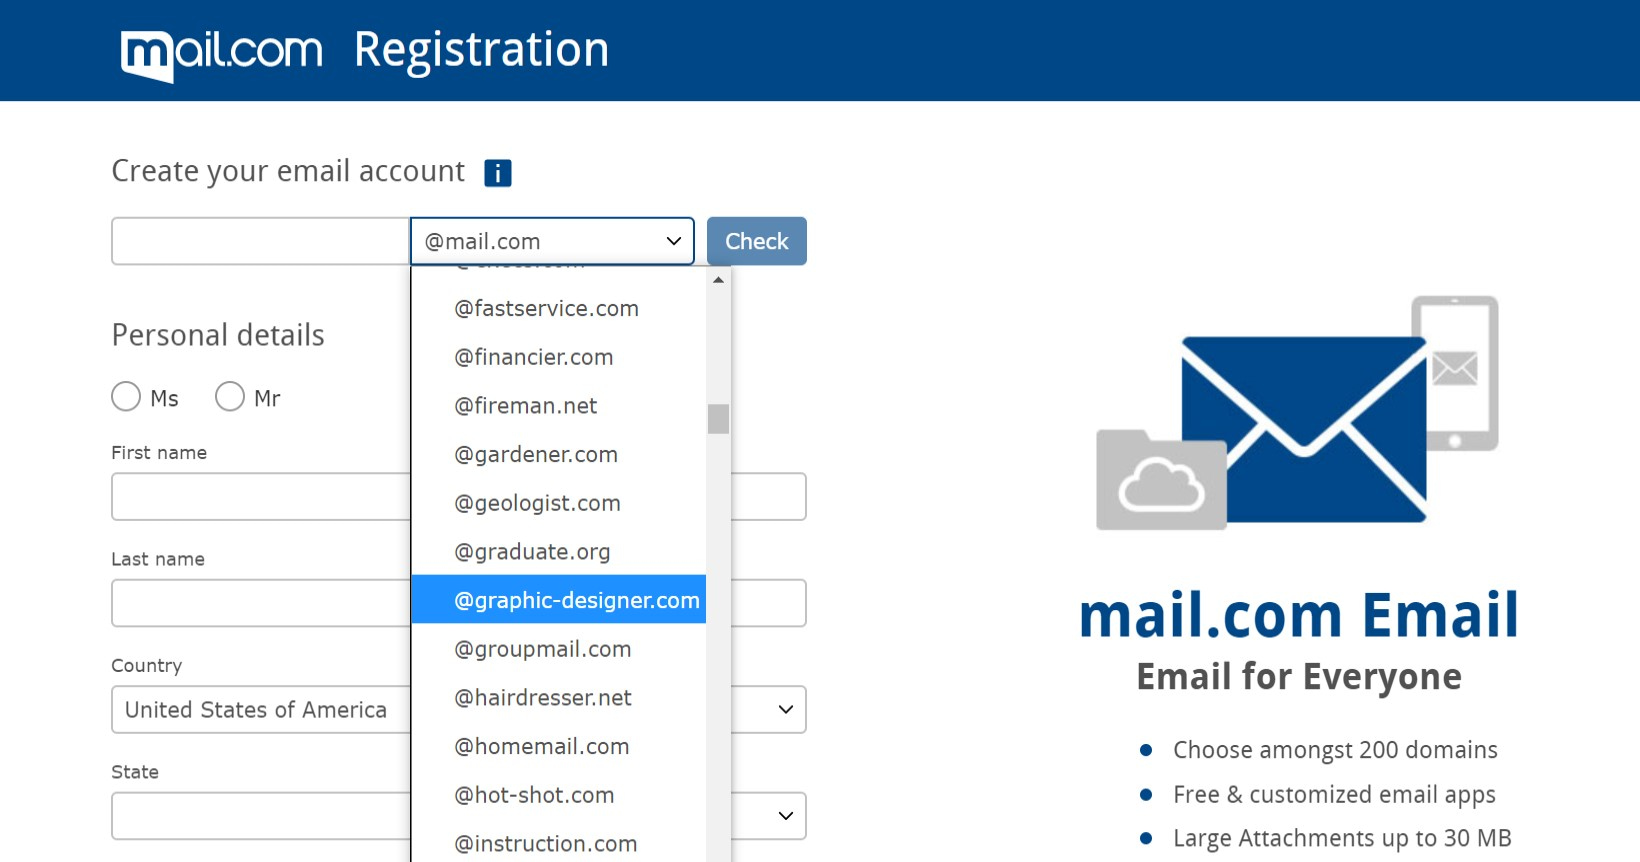 The Mail.com registration page.